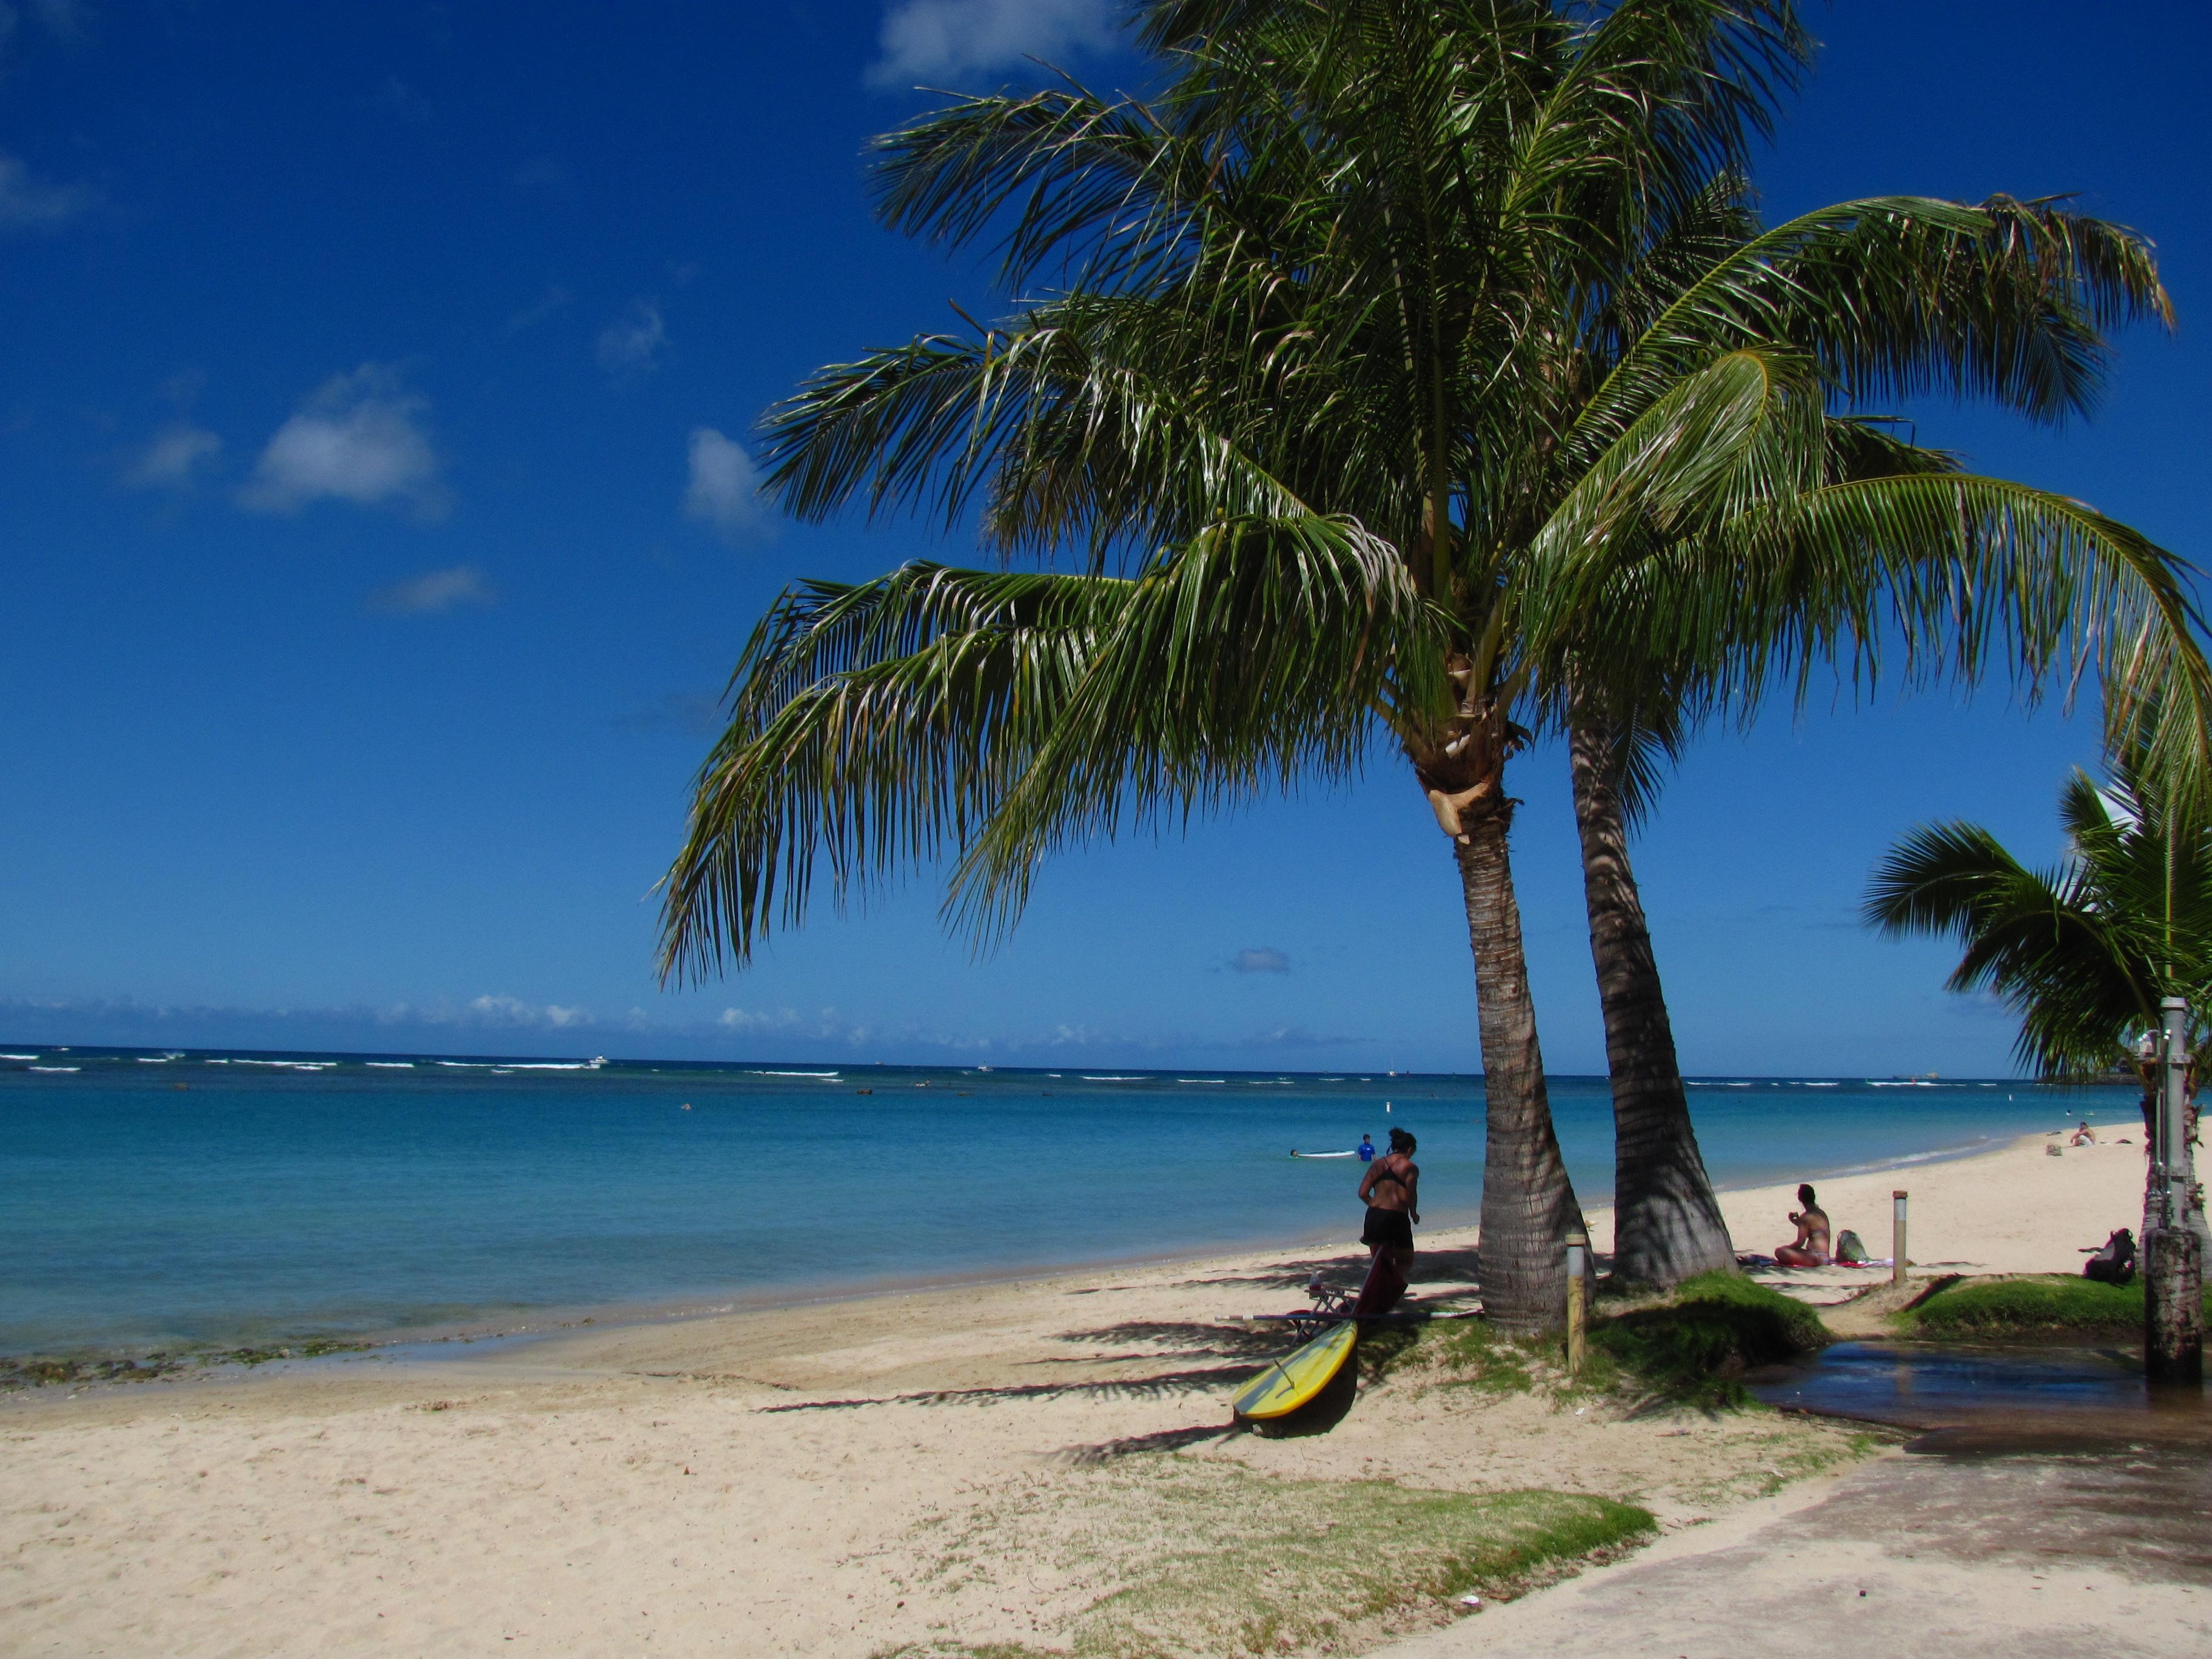 """Oahu South Shore<br/>Photo <a href=""""//creativecommons.org/licences/by-nd/3.0/"""" class=""""cc-small"""" target=""""_blank""""><img typeof=""""foaf:Image"""" class=""""image-style-none"""" src=""""https://i.creativecommons.org/l/by-nd/3.0/80x15.png"""" width=""""80px"""" height=""""15px"""" alt=""""Creative Commons Licence"""" /></a> <a href=""""http://www.flickr.com/photos/66478195@N00/4719684259"""">Loren Javier</a>"""